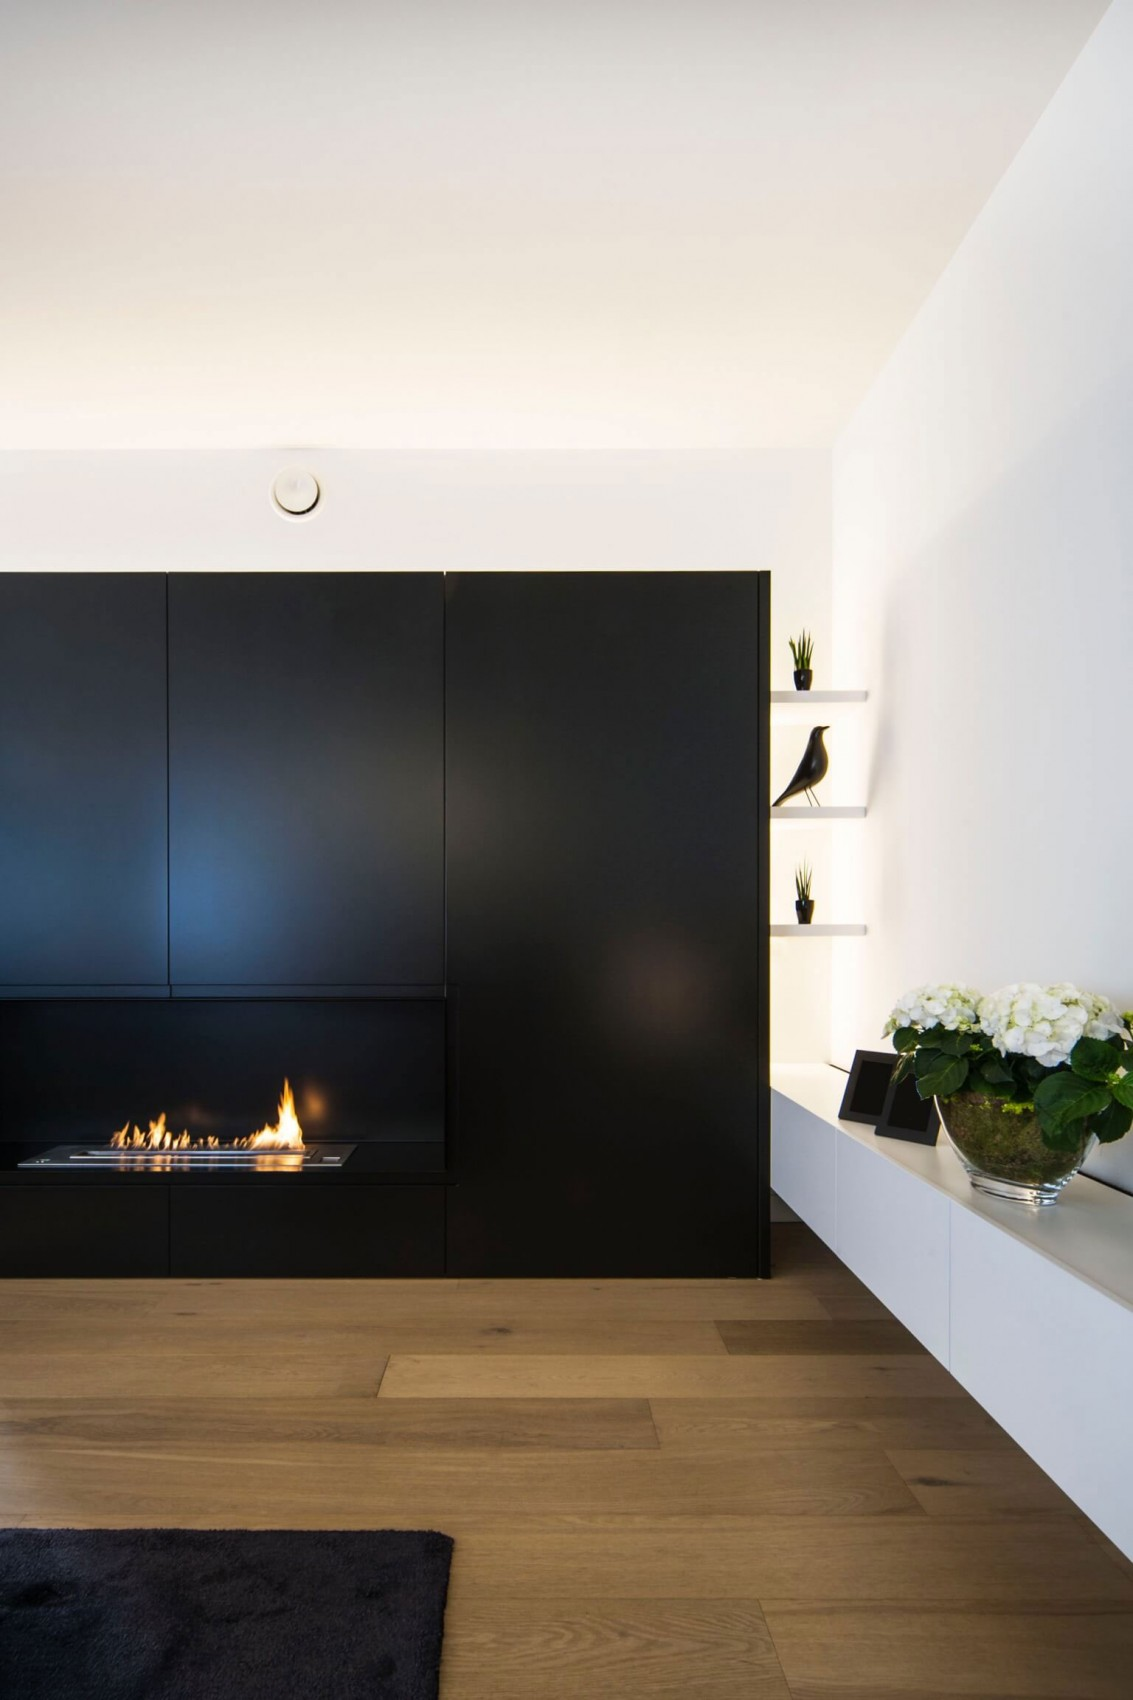 Black closet in minimalist apartment by Filip Deslee